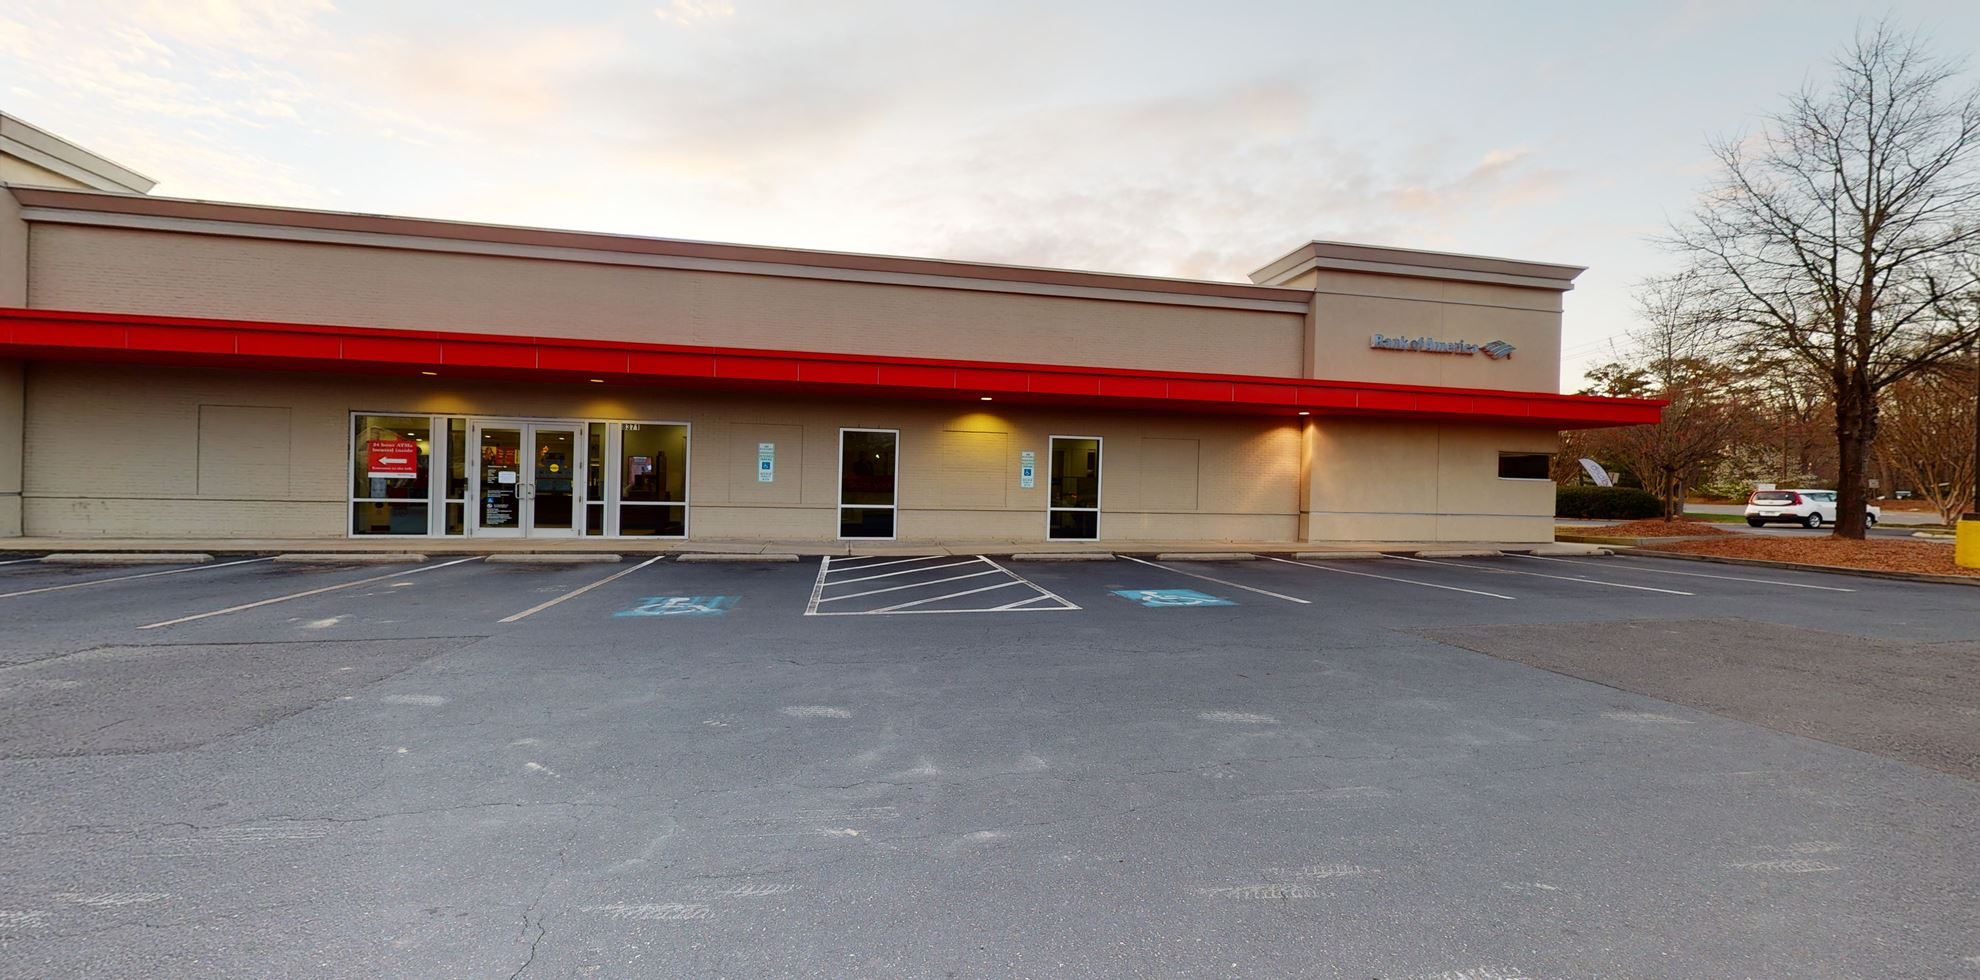 Bank of America financial center with drive-thru ATM and teller   8371 Creedmoor Rd, Raleigh, NC 27613